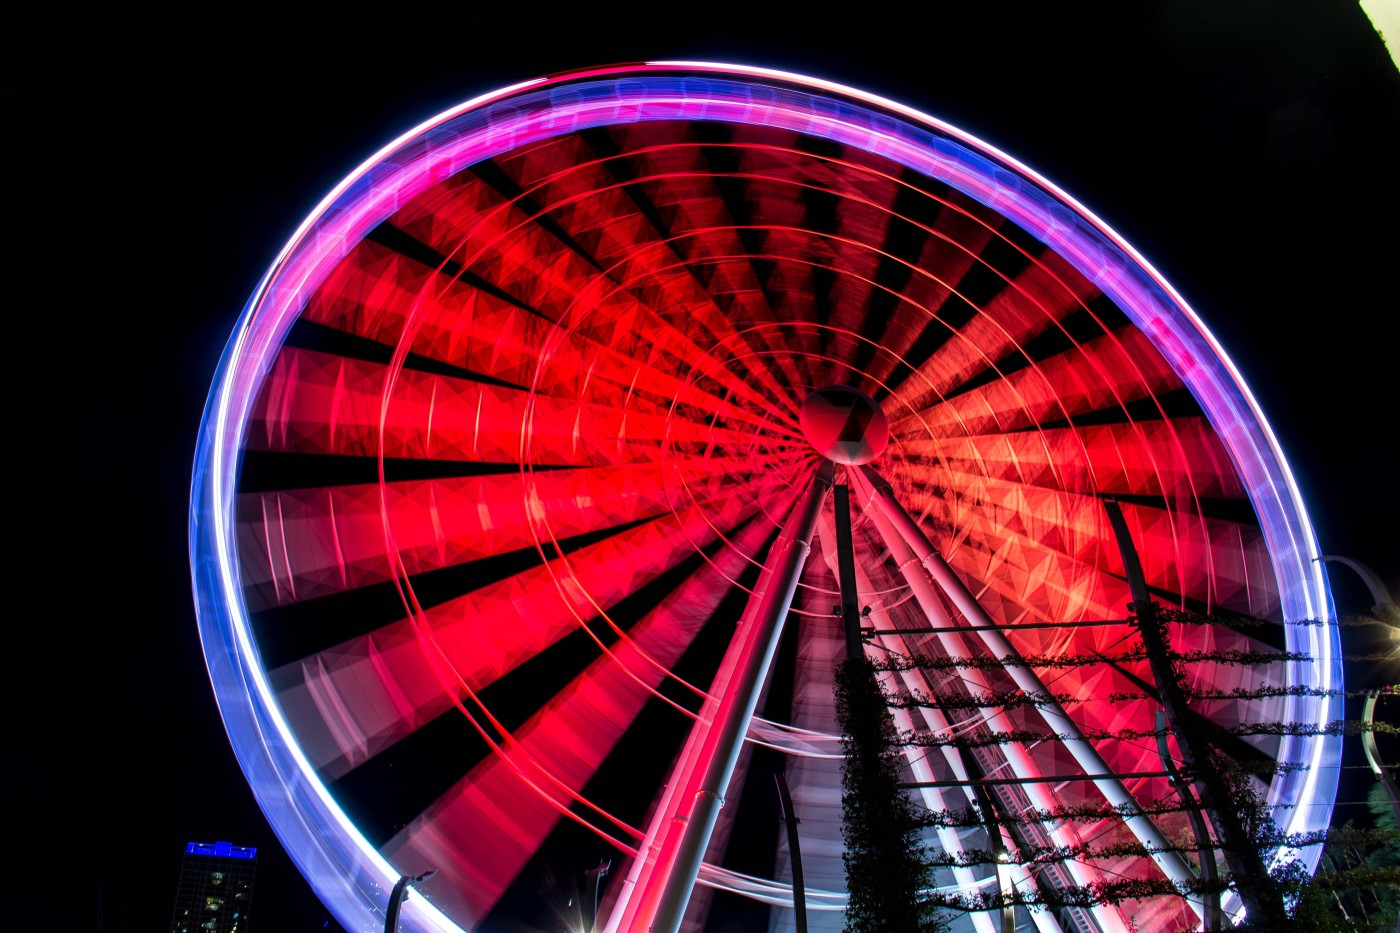 The Wheel of Brisbane, ISO100, 18mm, f/9, 3.2s